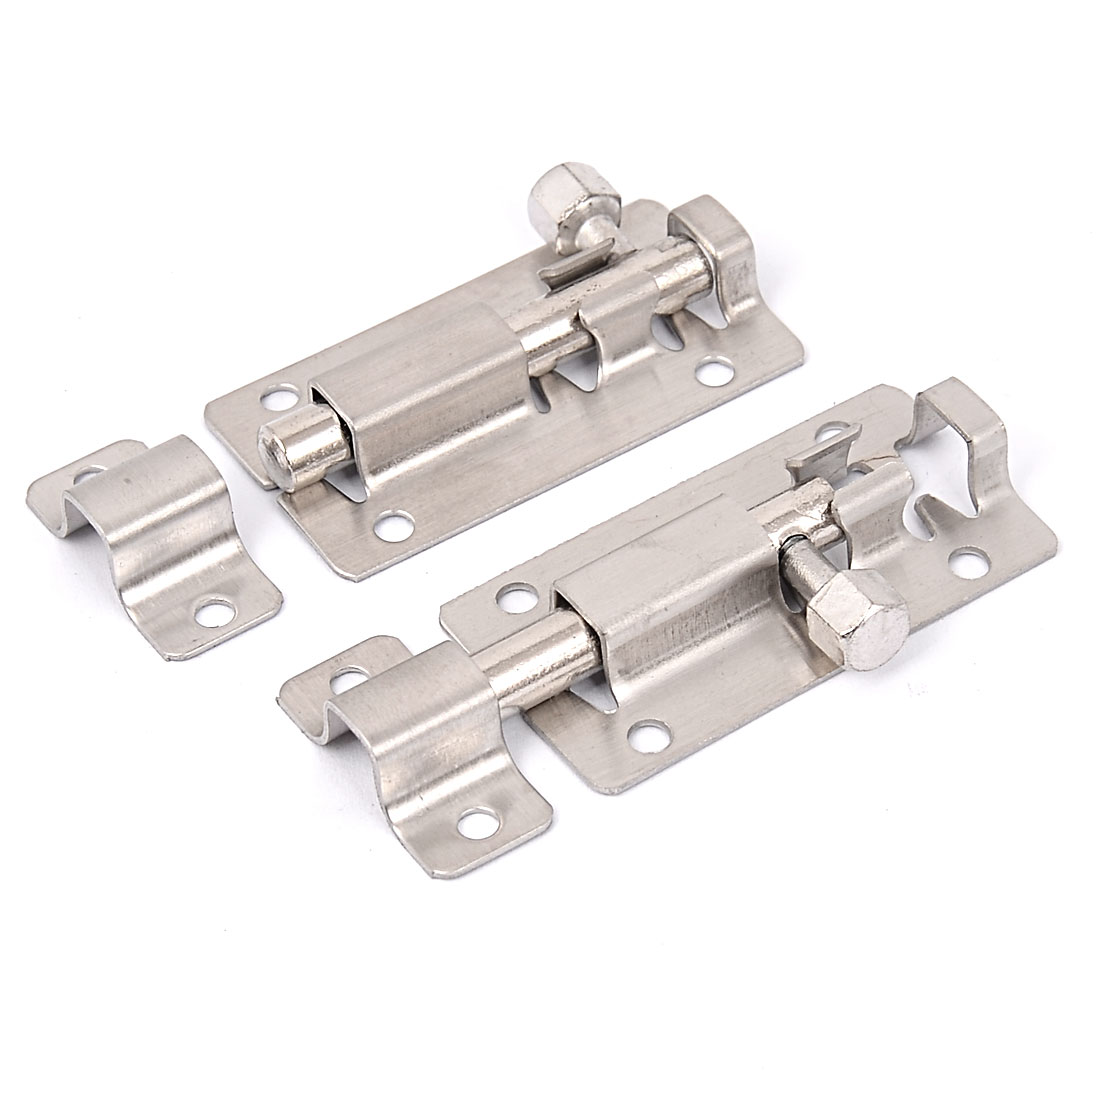 "Stainless Steel  Latch Slide Lock Door Window  Bolt 2"" Long 2pcs"